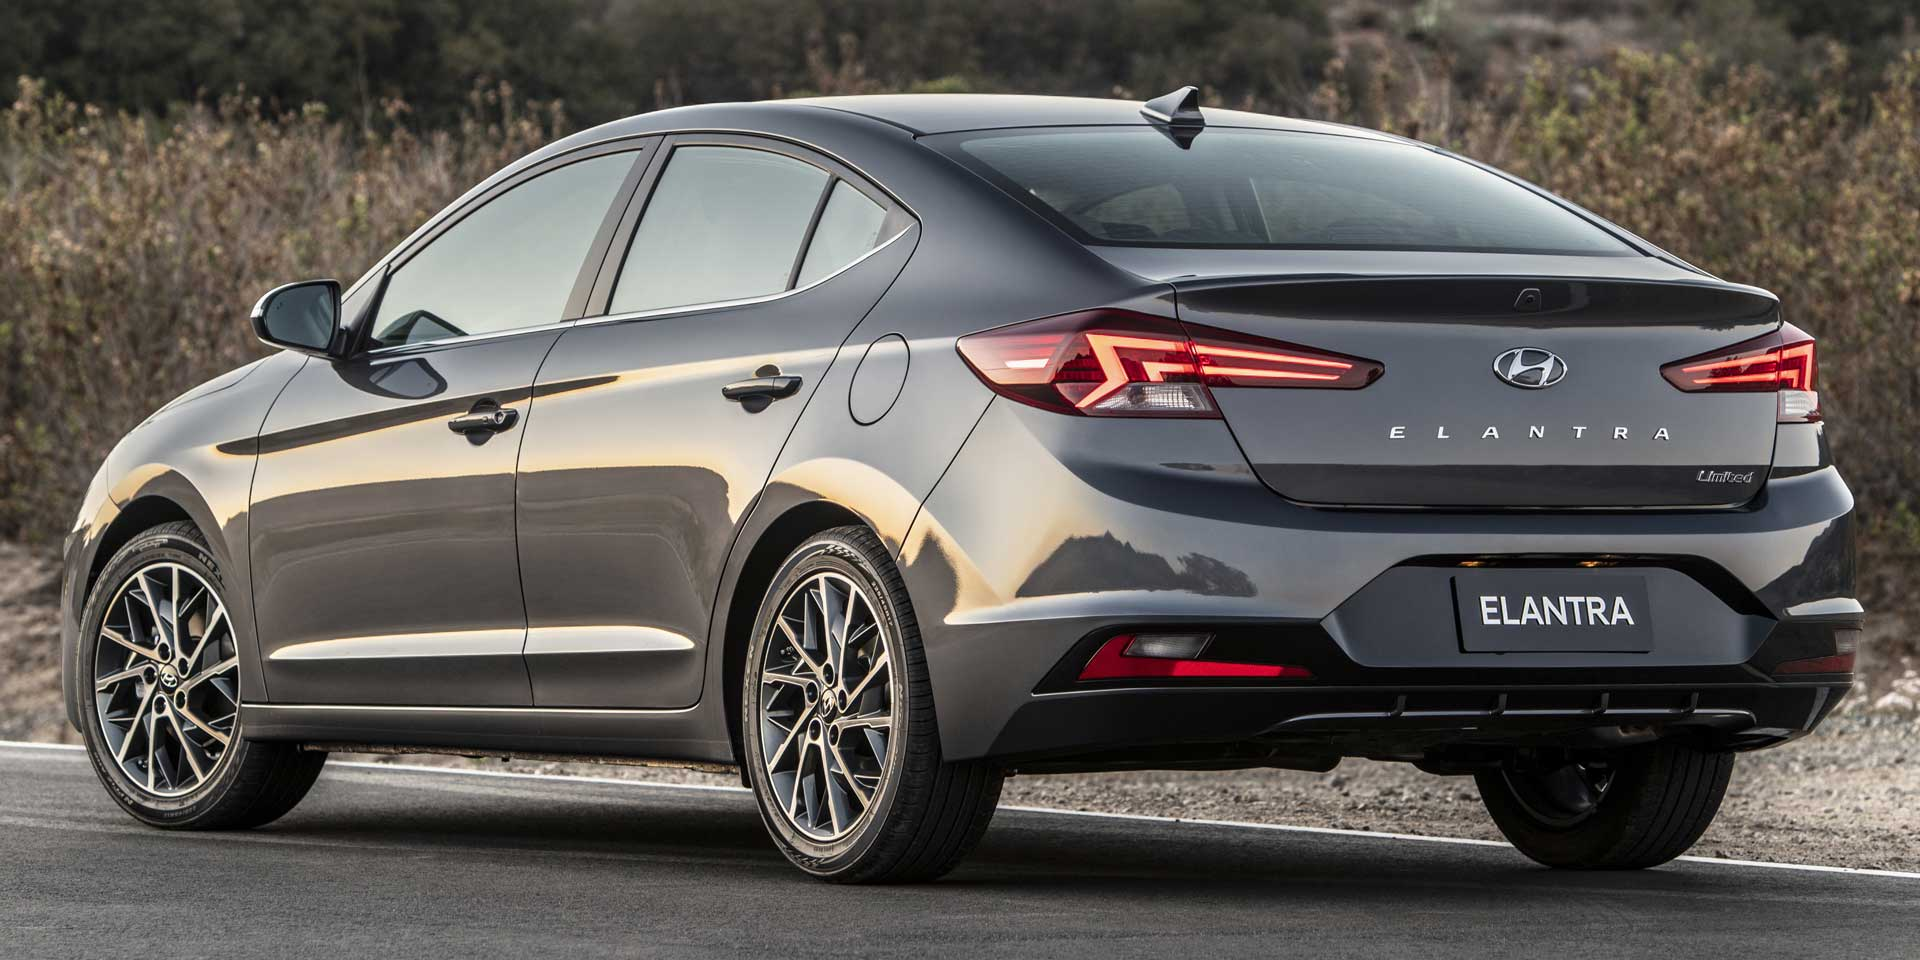 2019 Hyundai Elantra Vehicles On Display Chicago